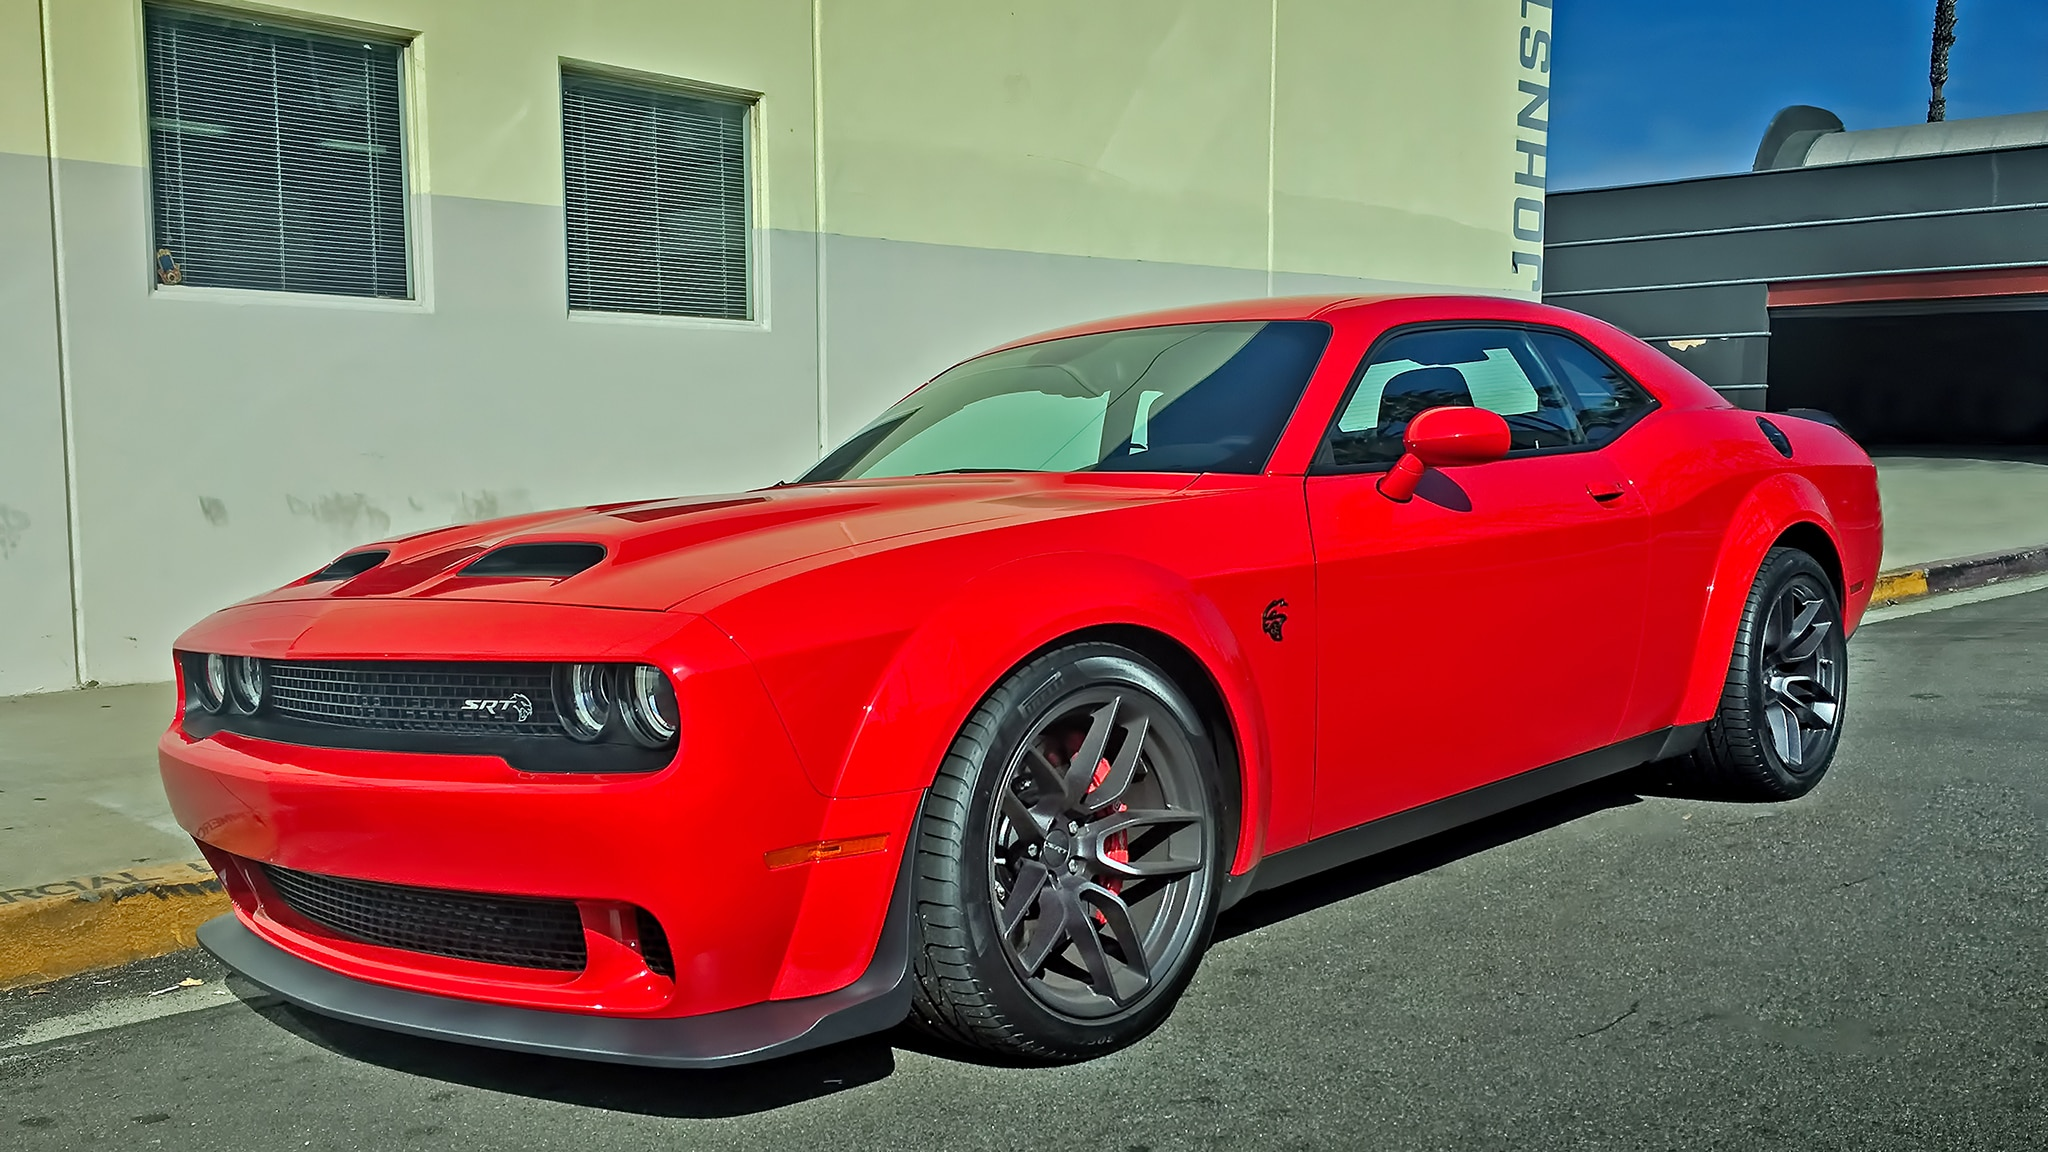 2019 Dodge Challenger SRT Hellcat Redeye Hero Red